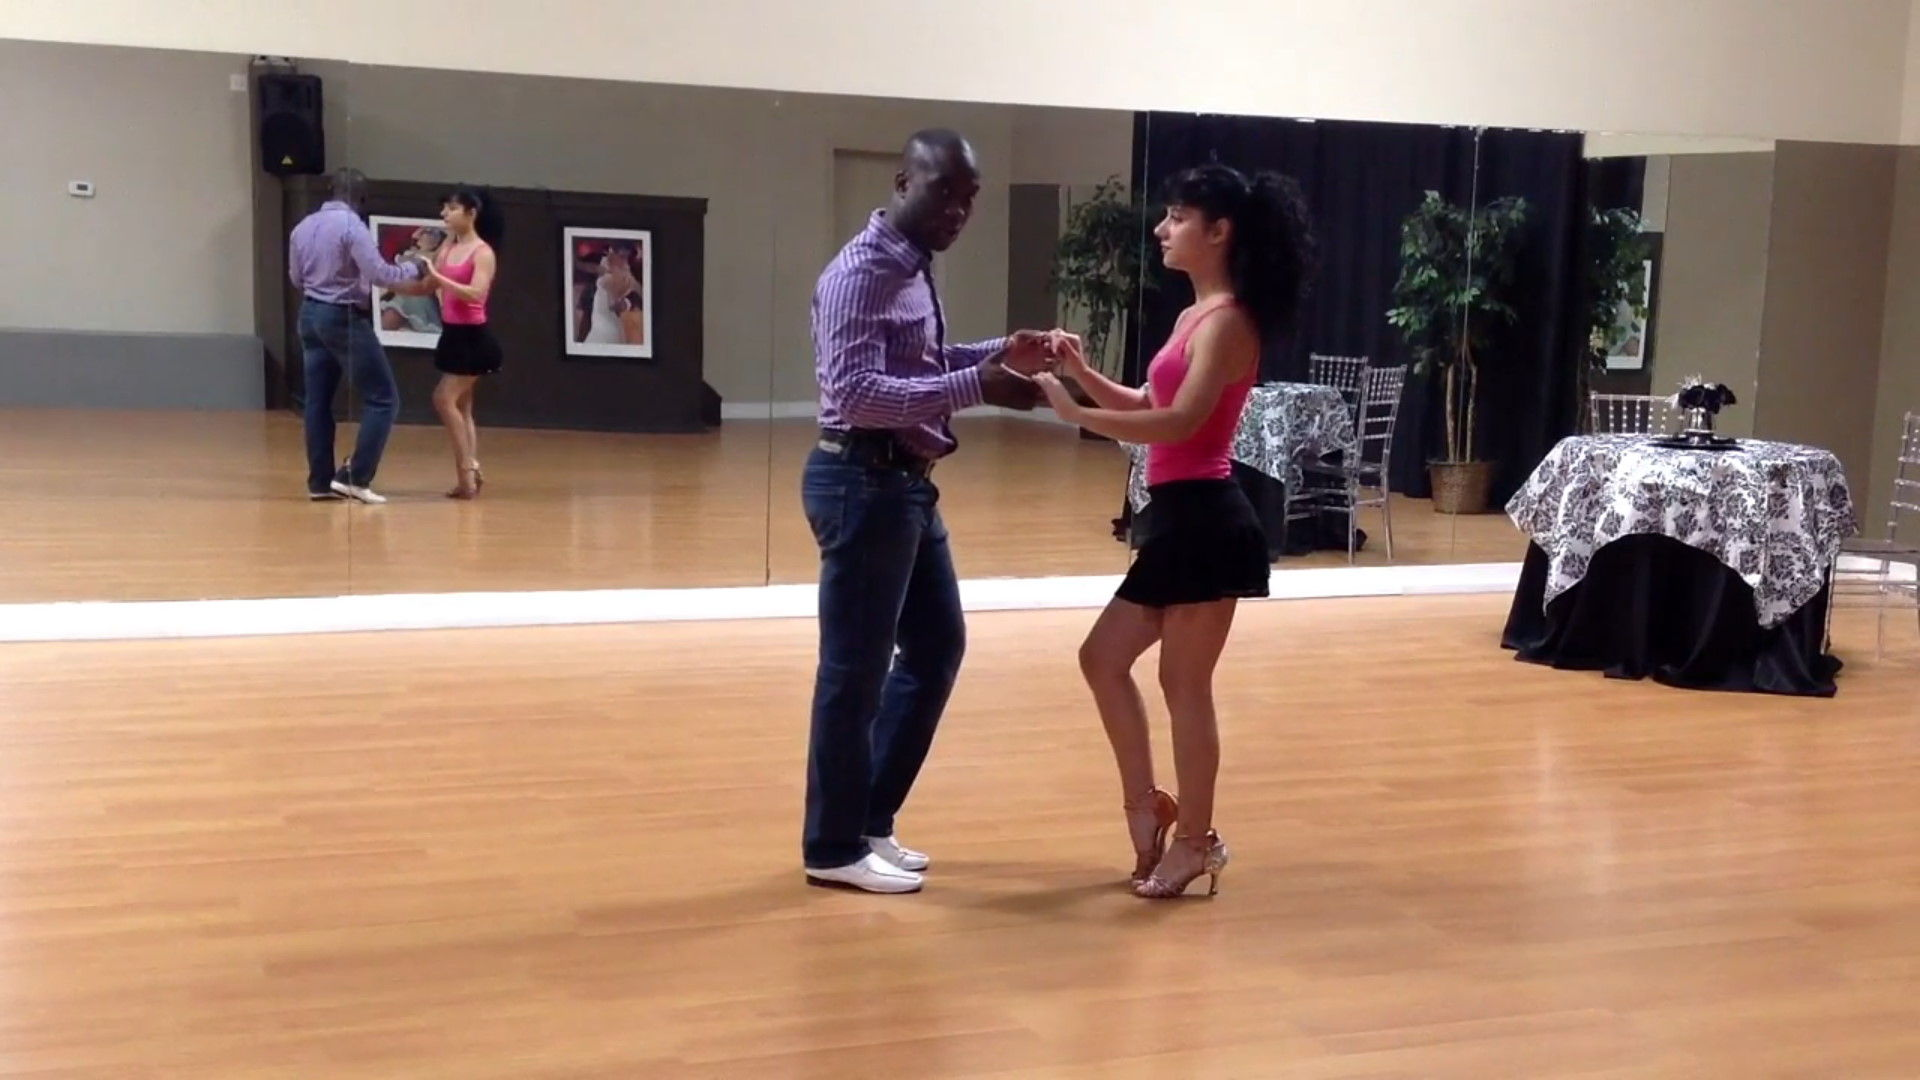 Learn How 2 Dance - Bachata Beginner by Darren Stuart - Dance With Me India